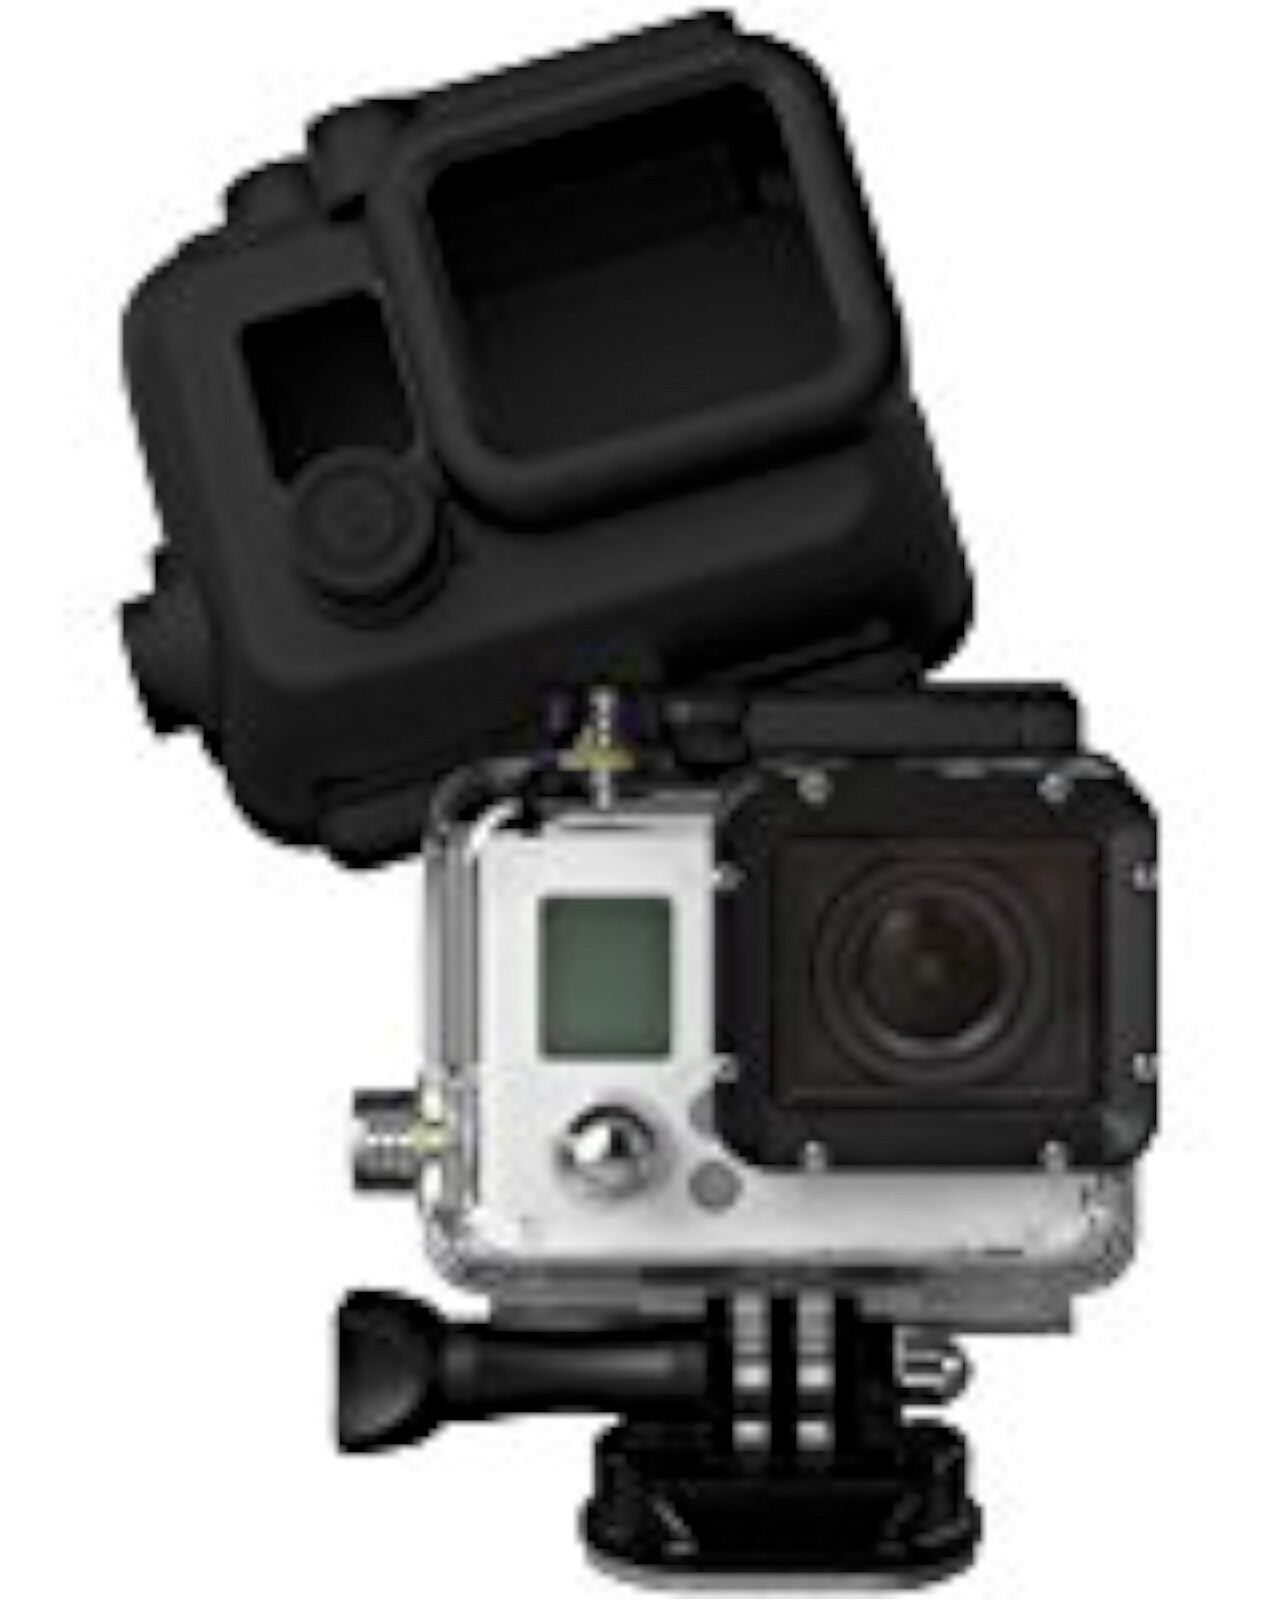 SEALED NEW Incase CL58072 Protective Case GoPro Hero 3 4 Digital ...